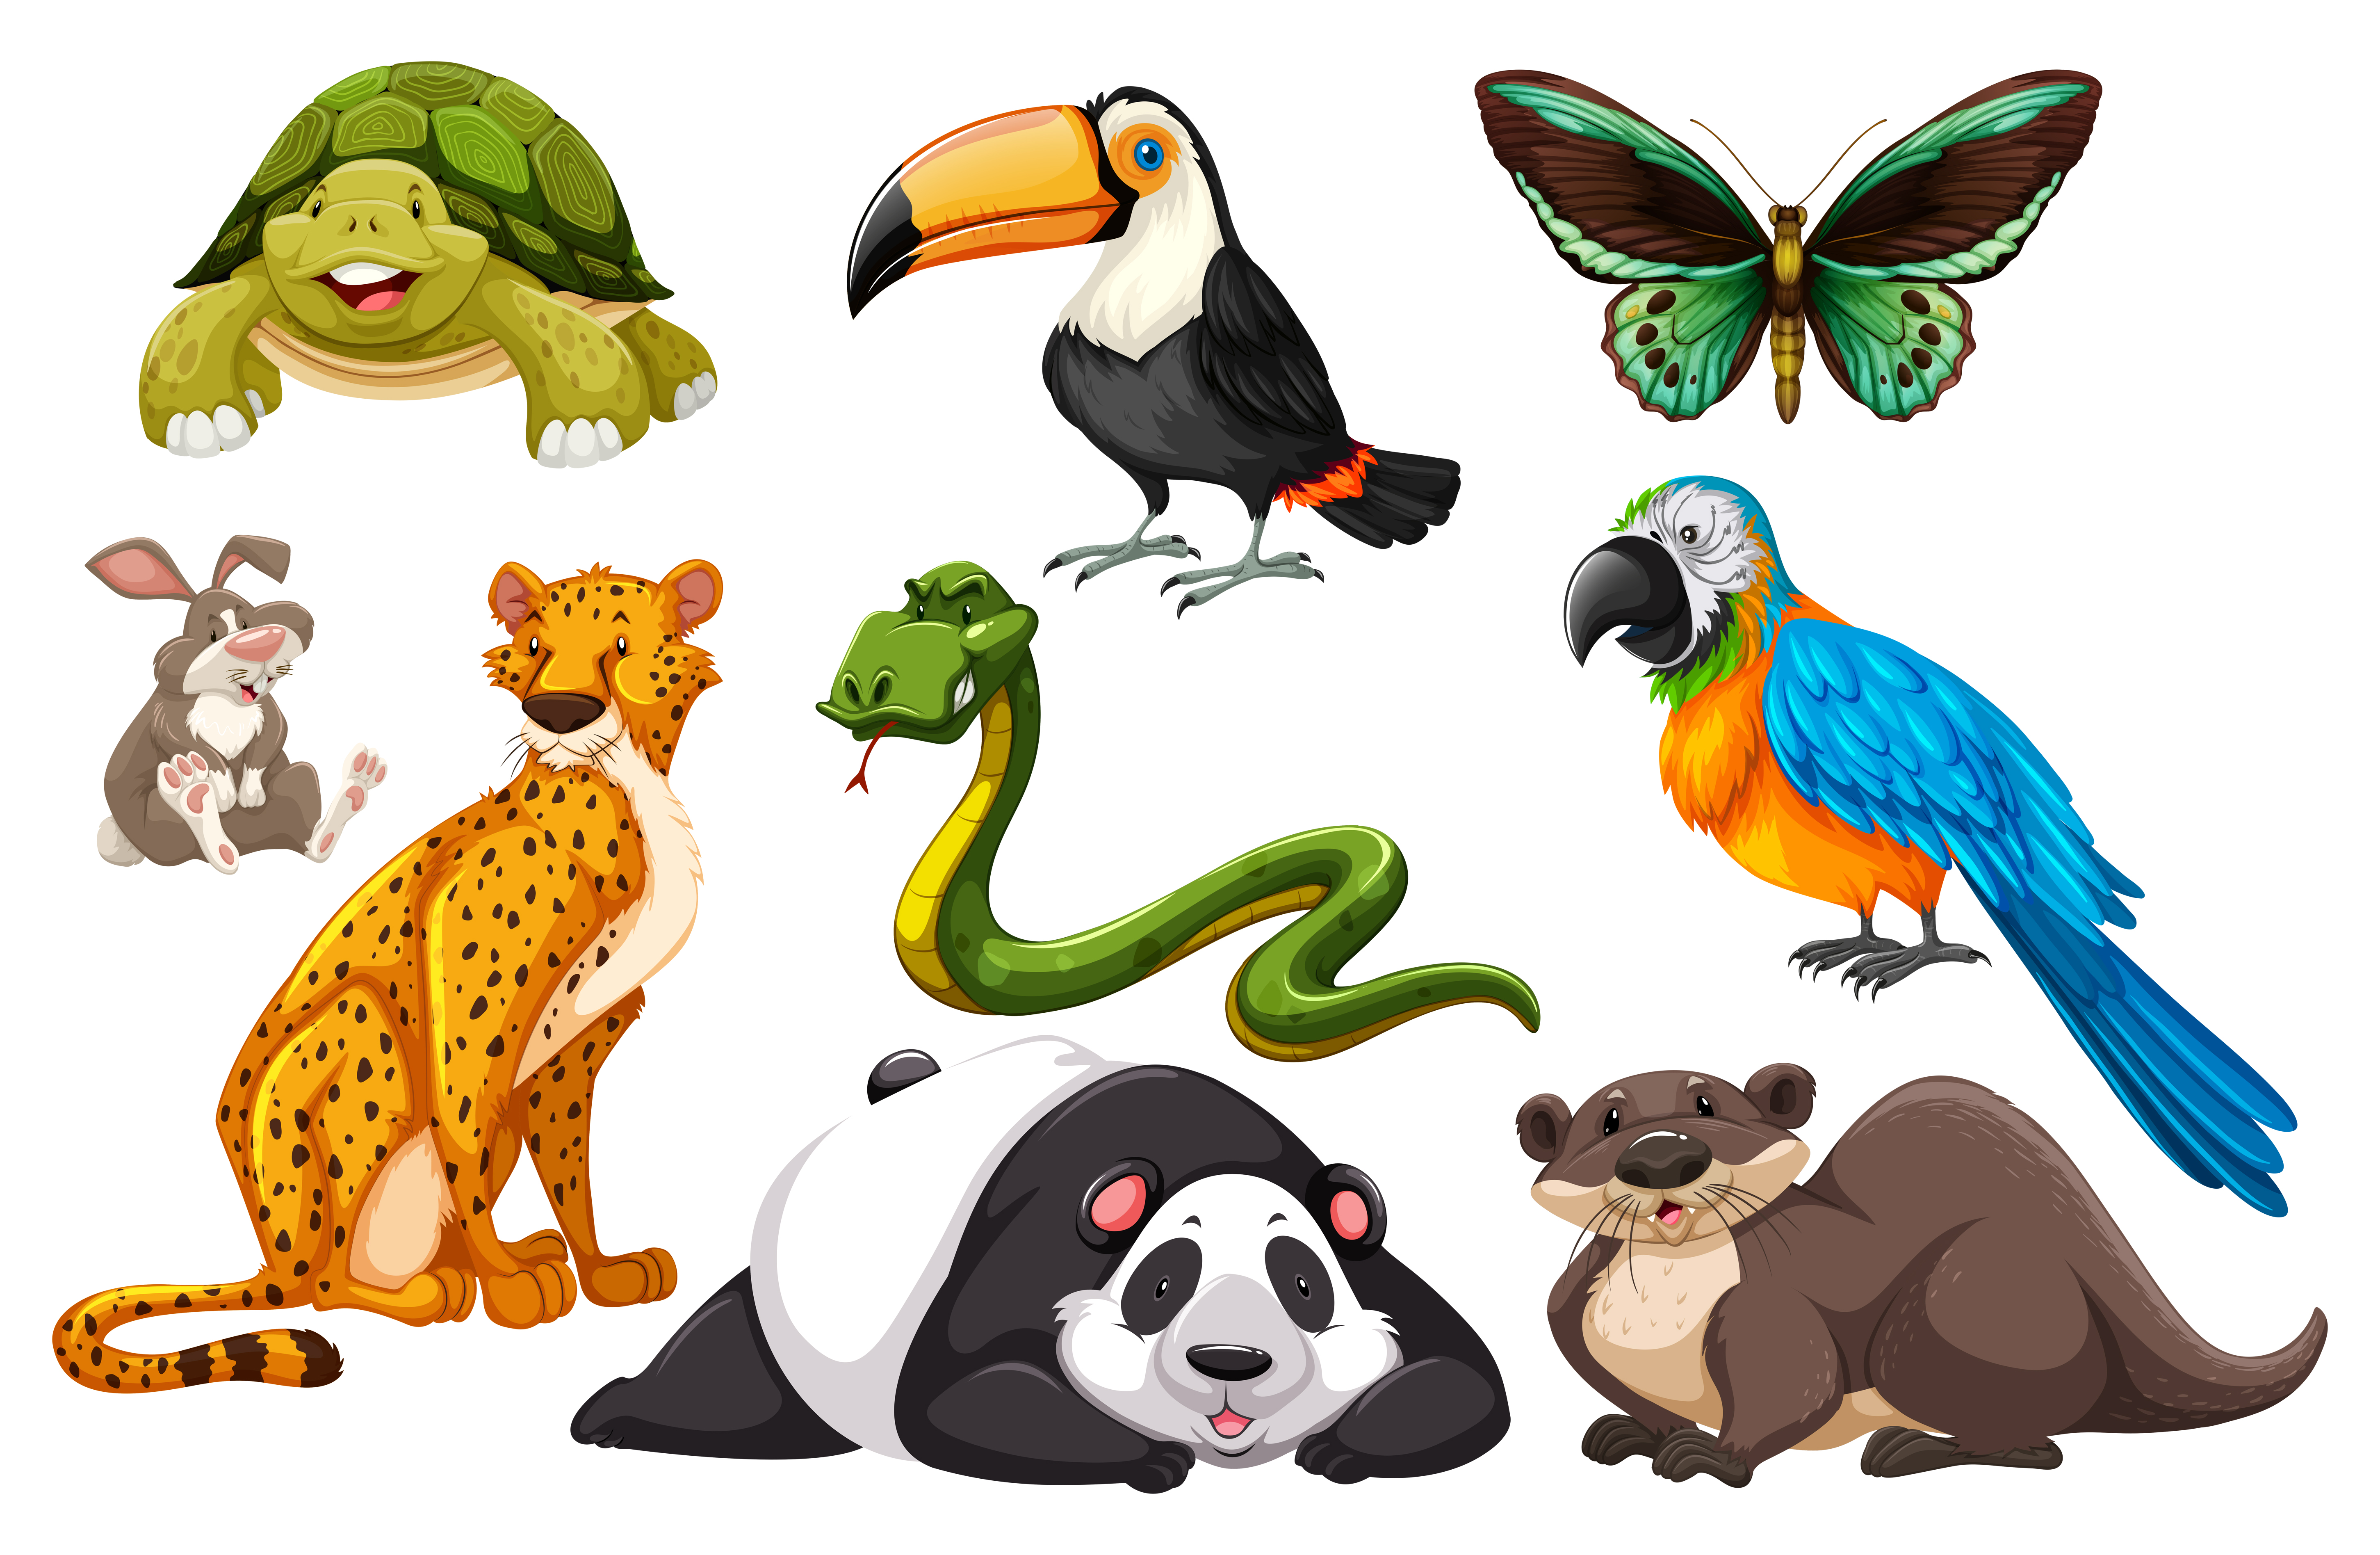 animals different kinds wild illustration vector animal cheetah turtle clipart mammal